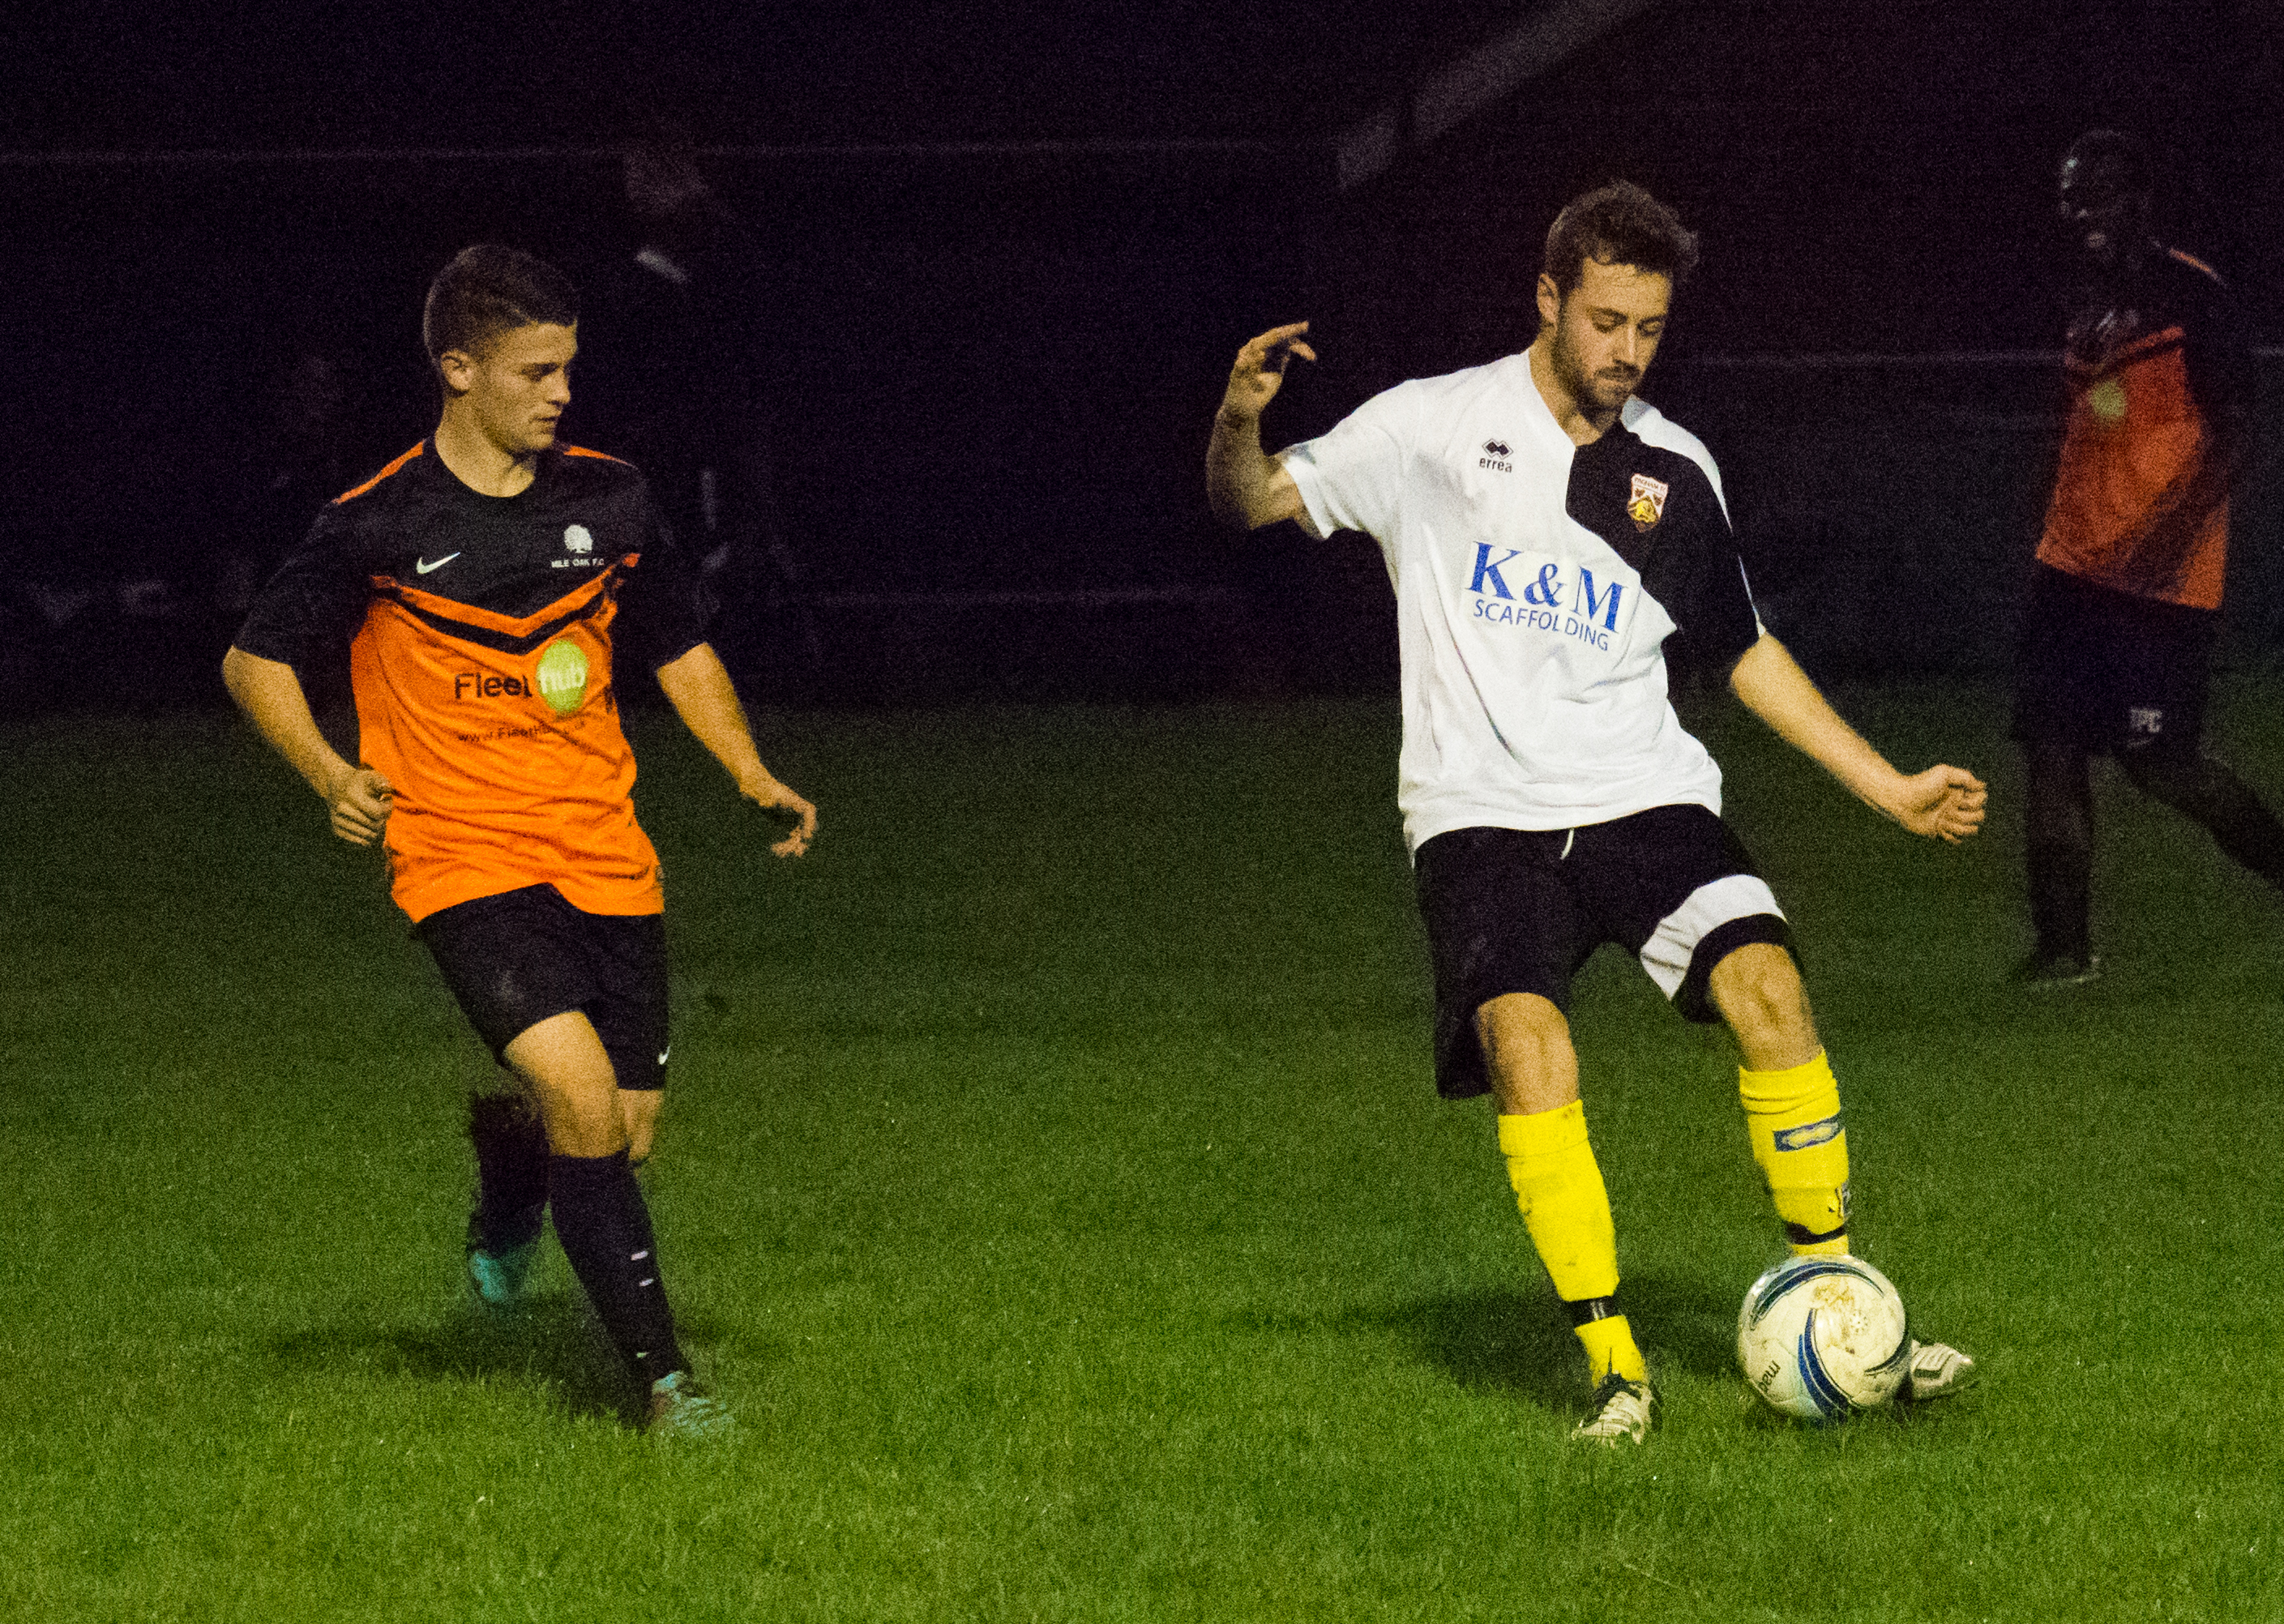 Mile Oak U21s vs Pagham 26.10.17 03